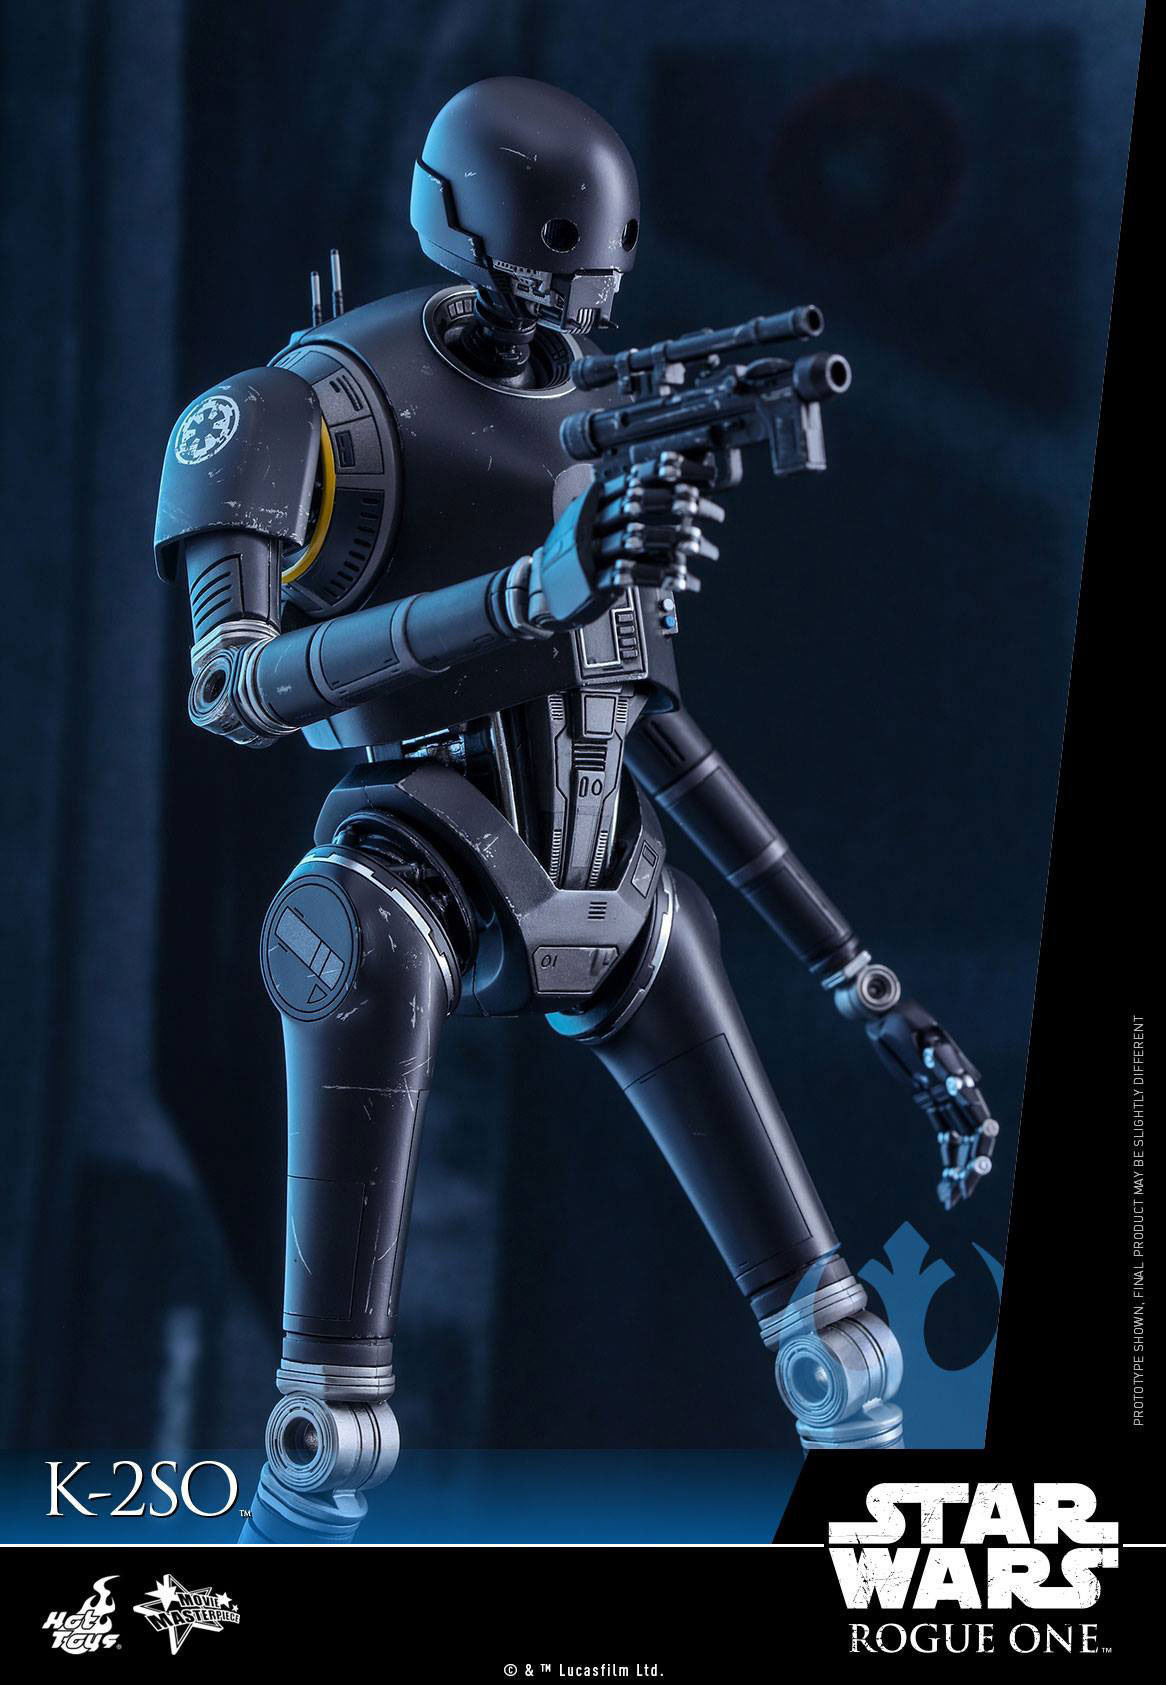 hot-toys-star-wars-rogue-one-K-2SO-figure-9